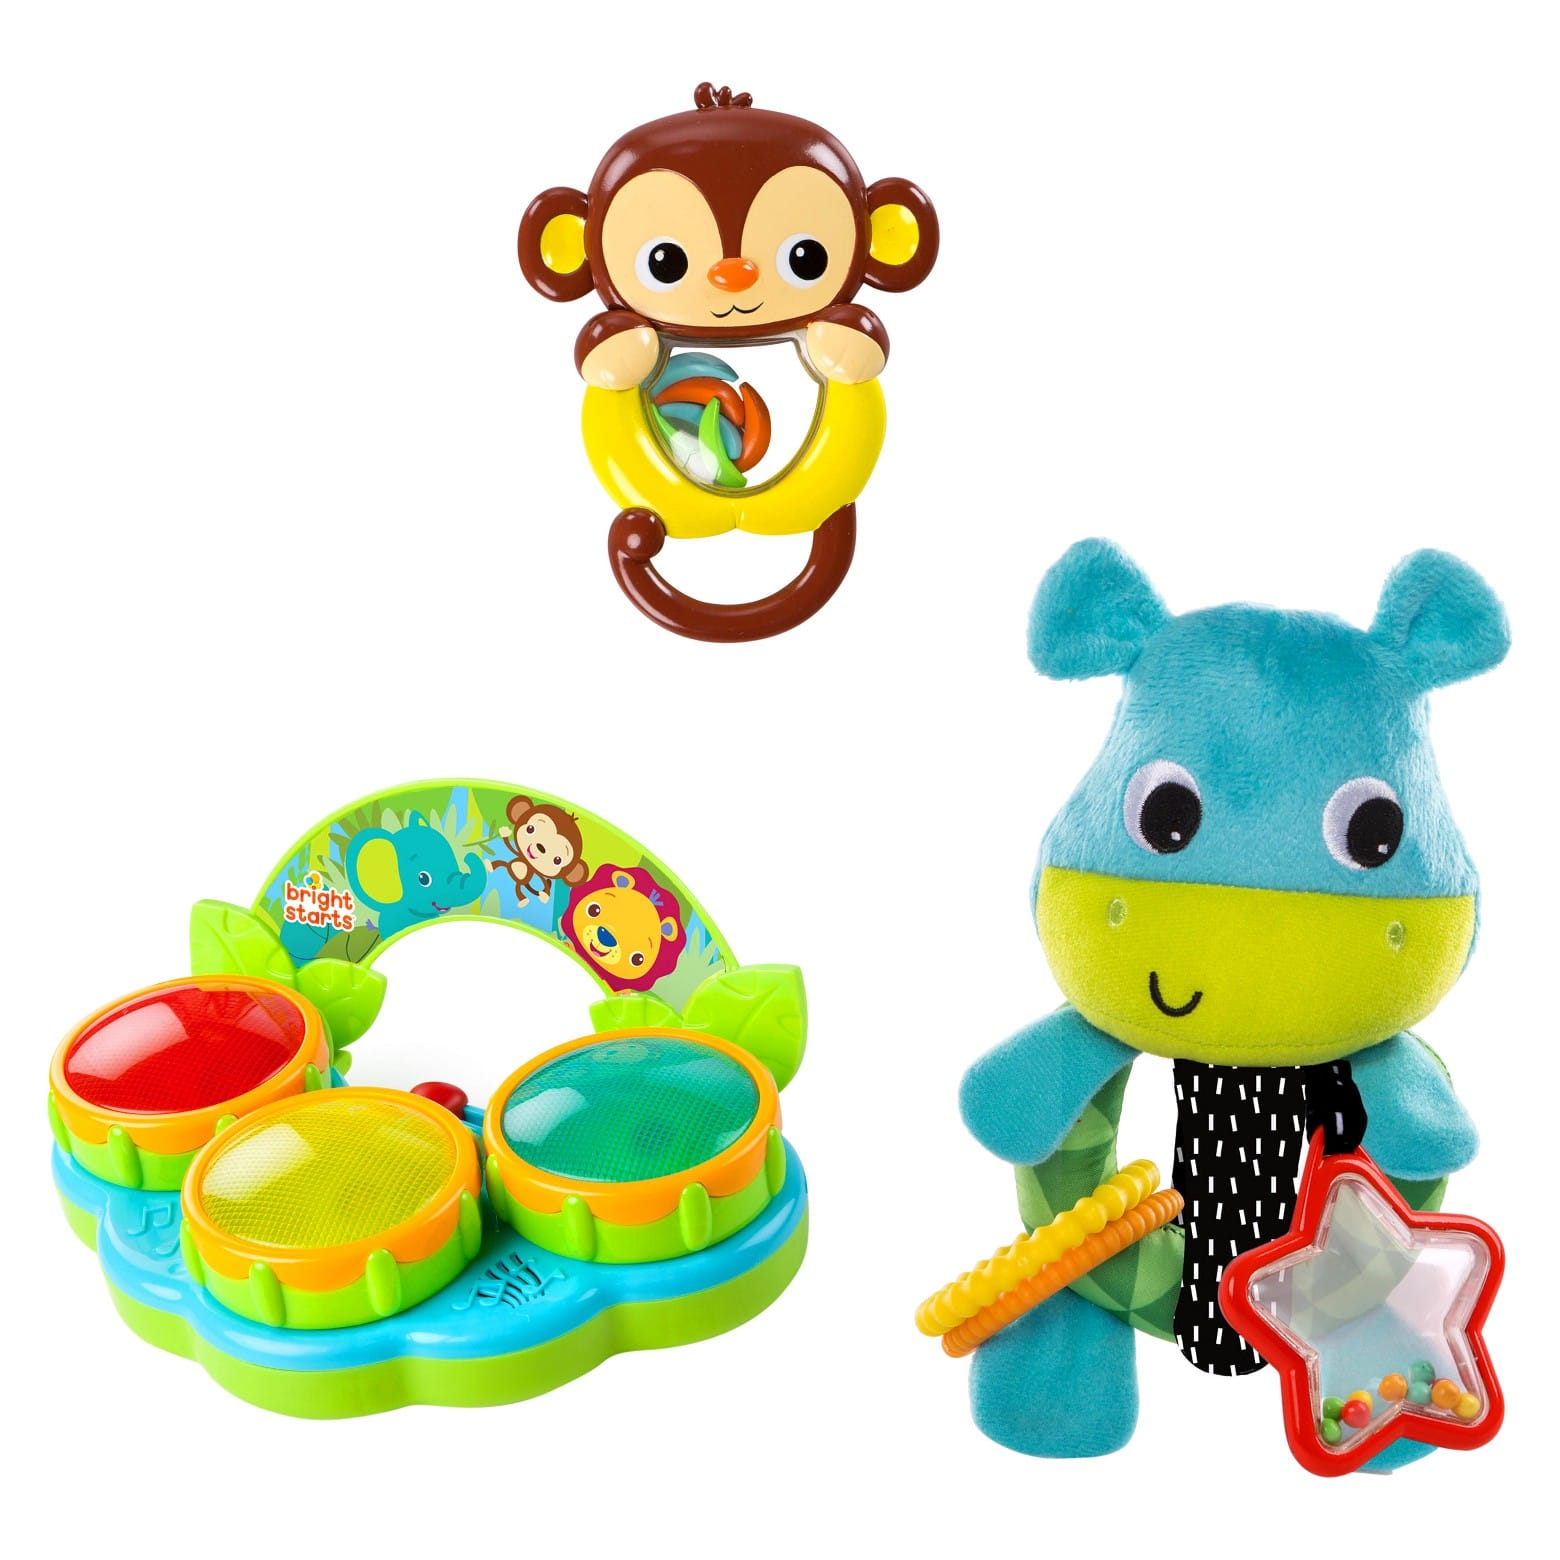 Bright Starts Jammin Jungle Gift Set $7.19